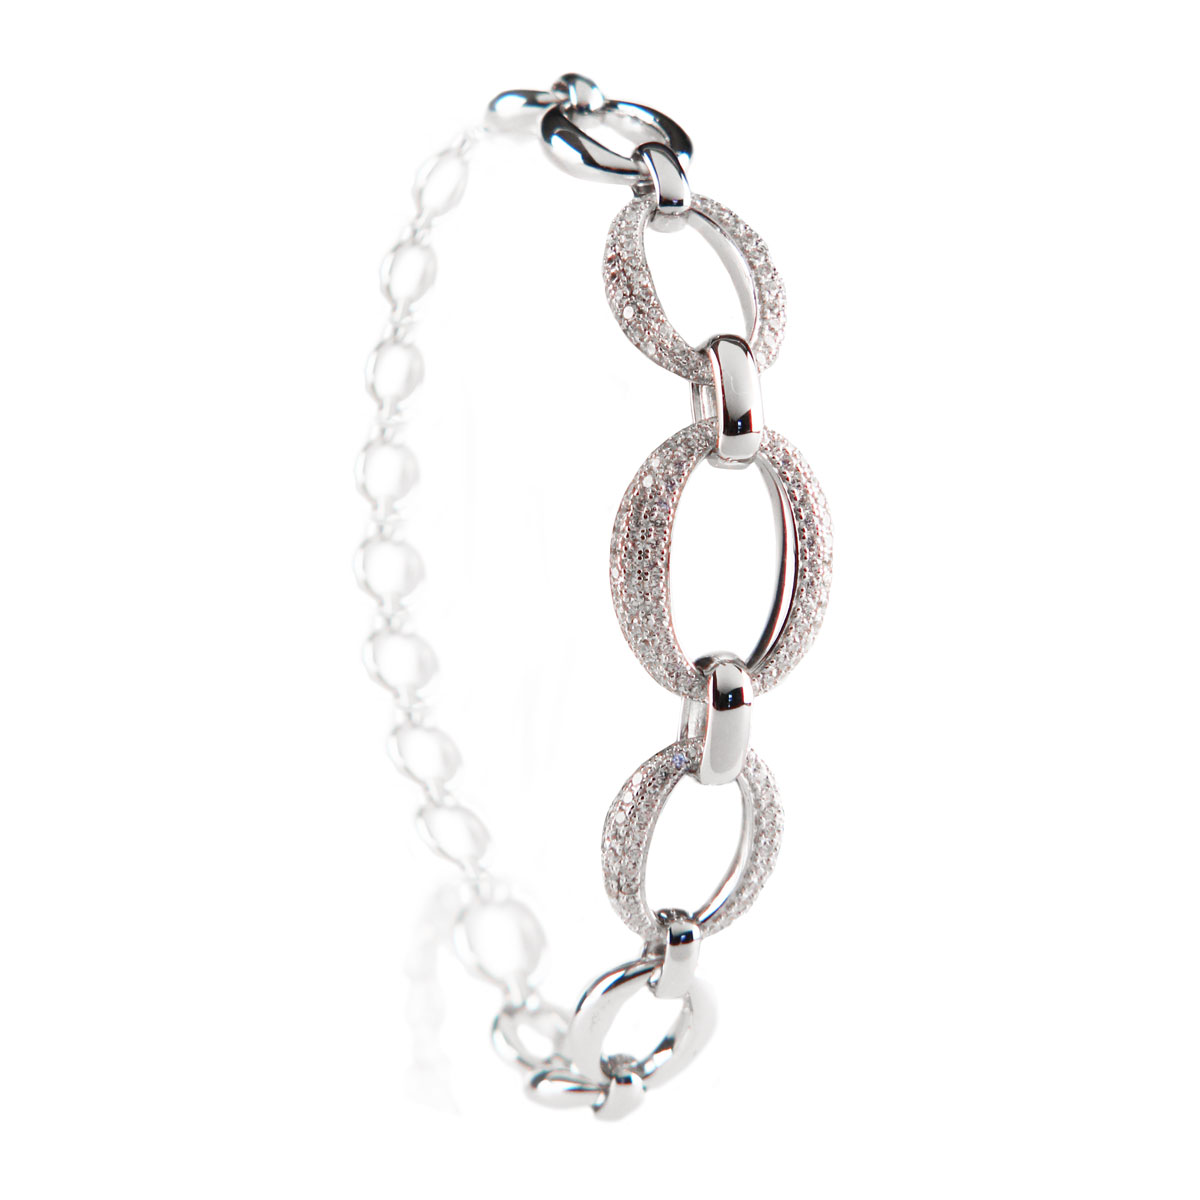 Cashs Ireland, Crystal and Silver Cocktail Statement Bracelet